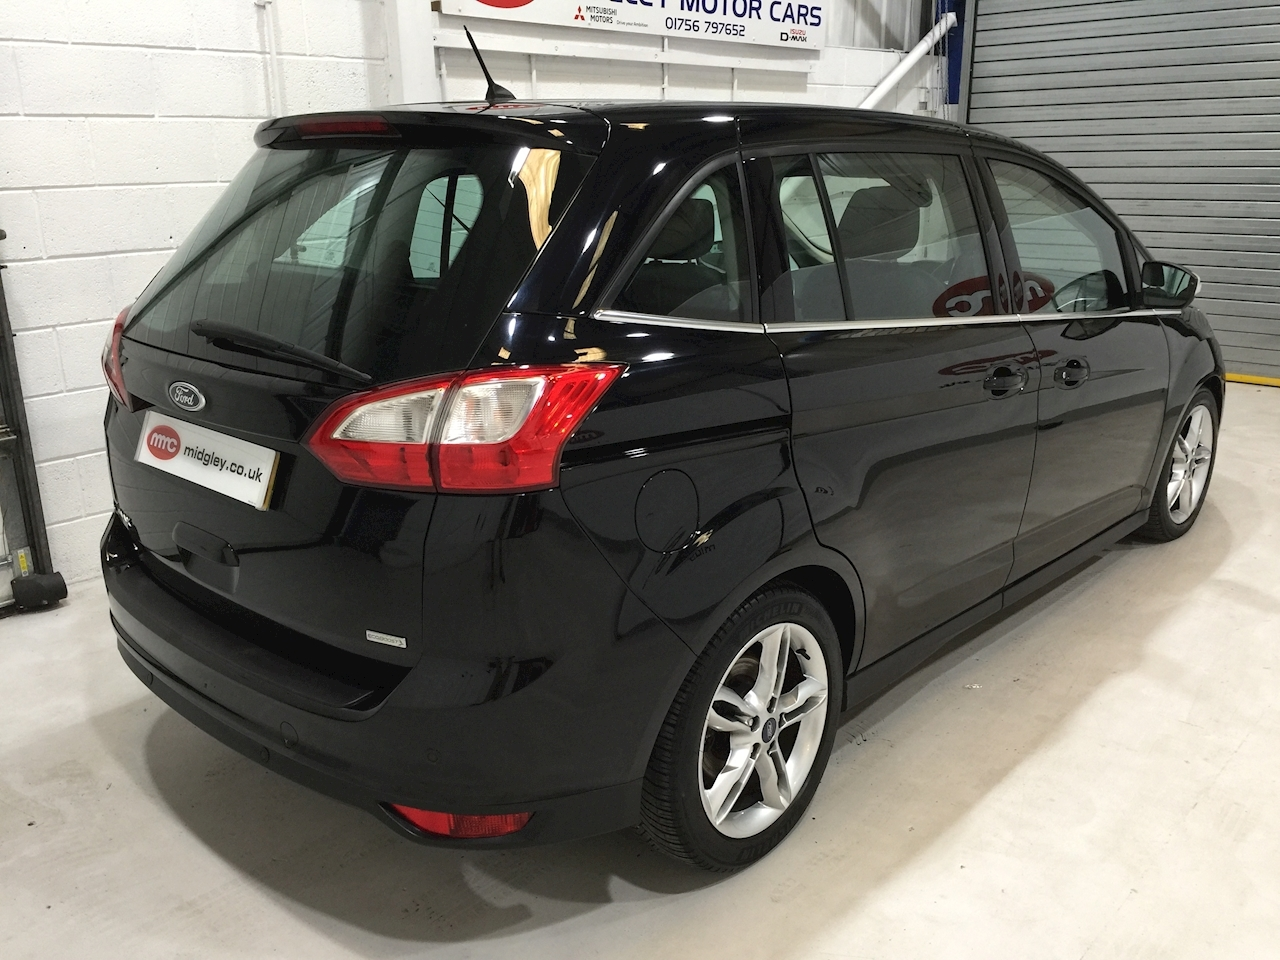 Grand C-Max Titanium X MPV 1.6 Manual Petrol